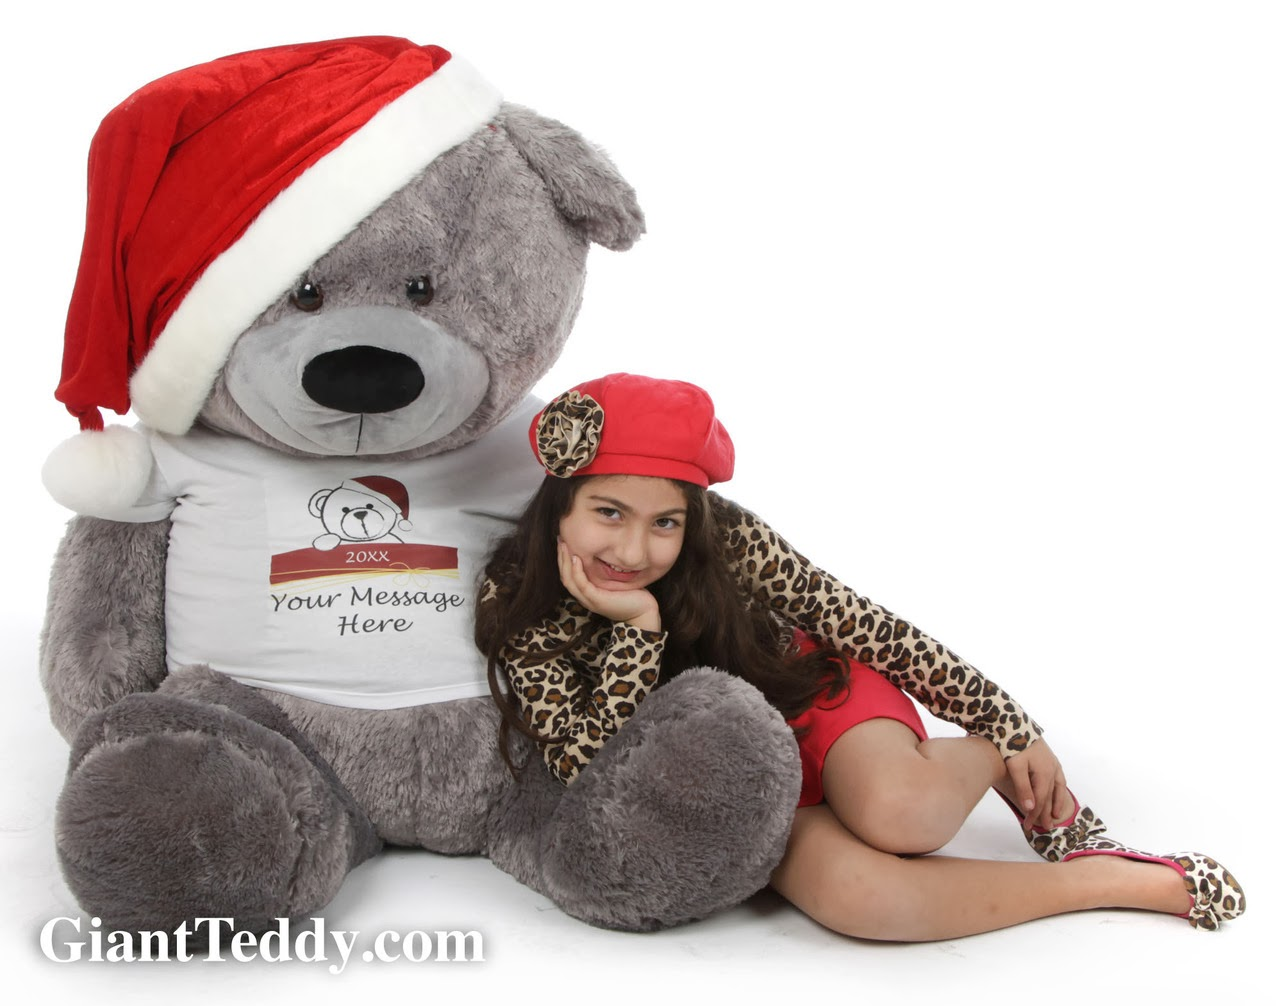 52in Personalized Teddy Bear Diamond Shags In Santa Hat - Wonderful Christmas Gift